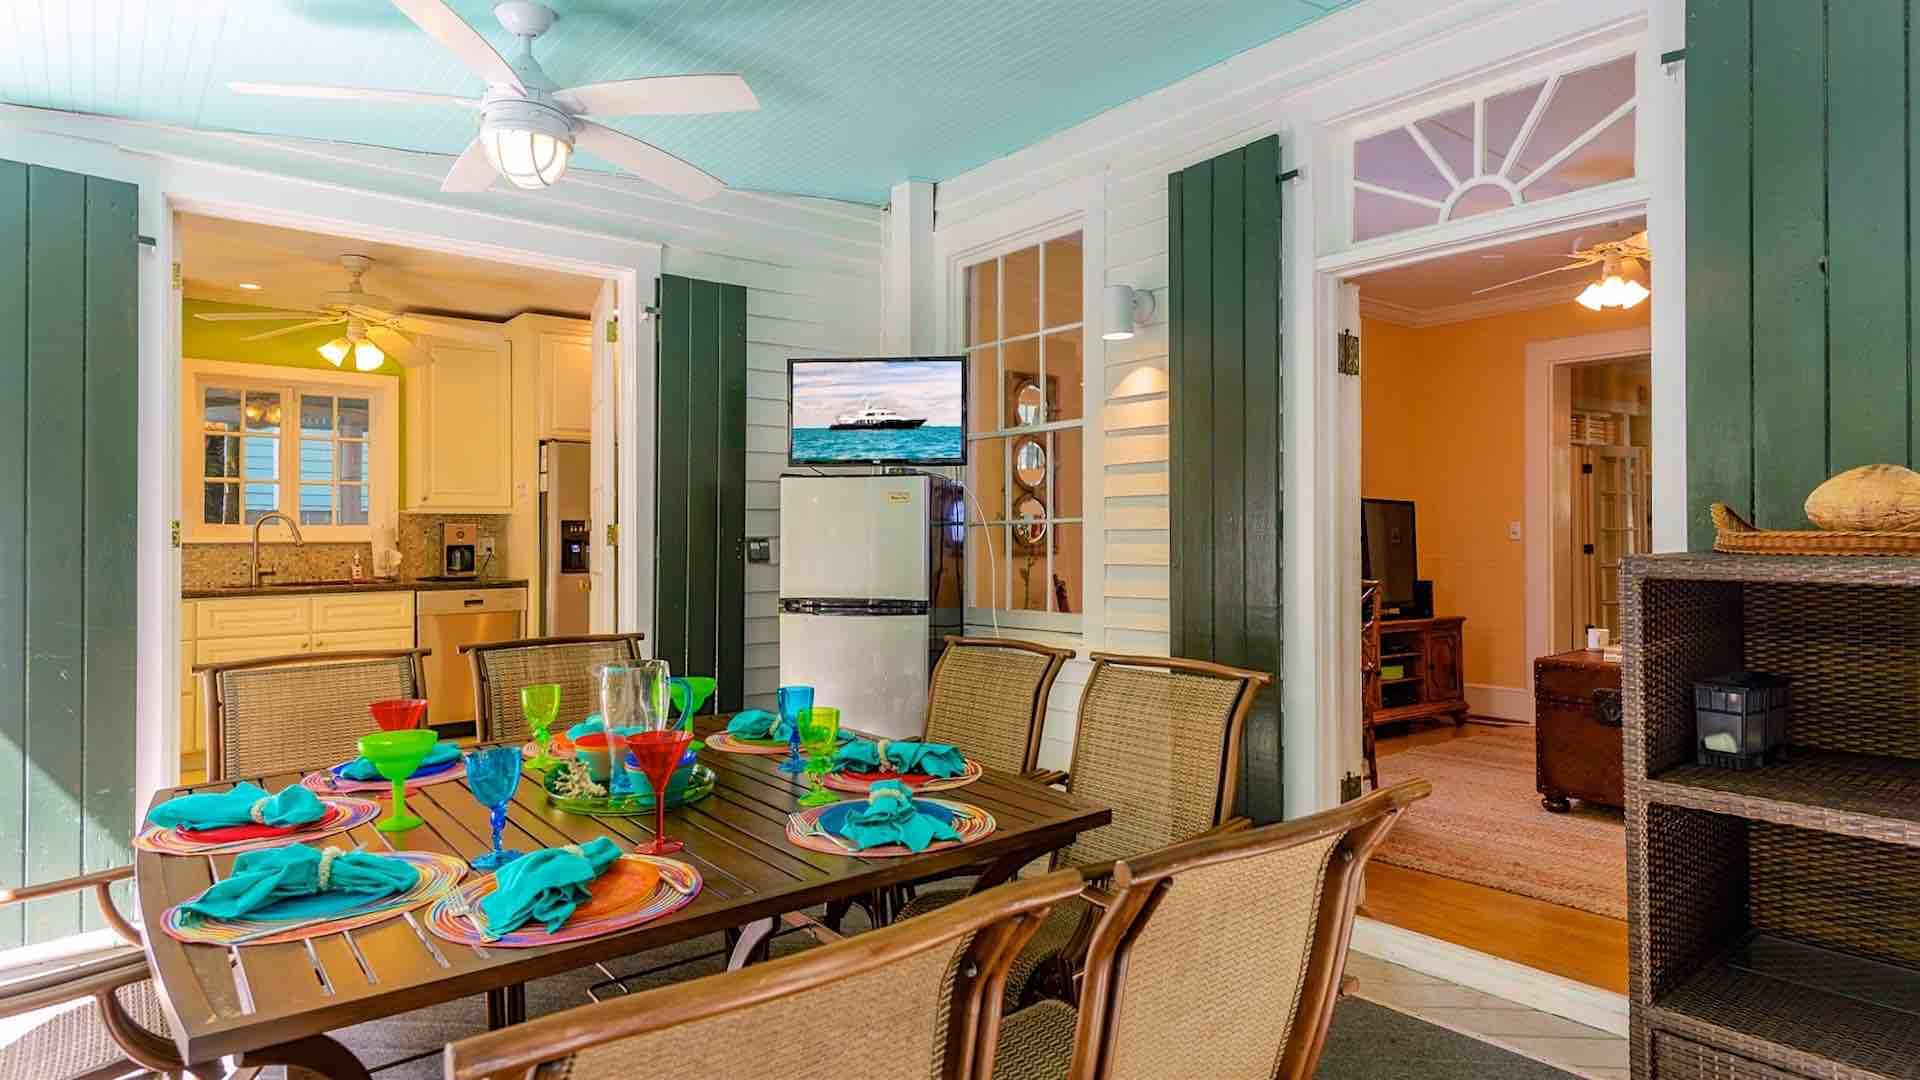 The back porch facing the pool area features a TV and dining table for eight.